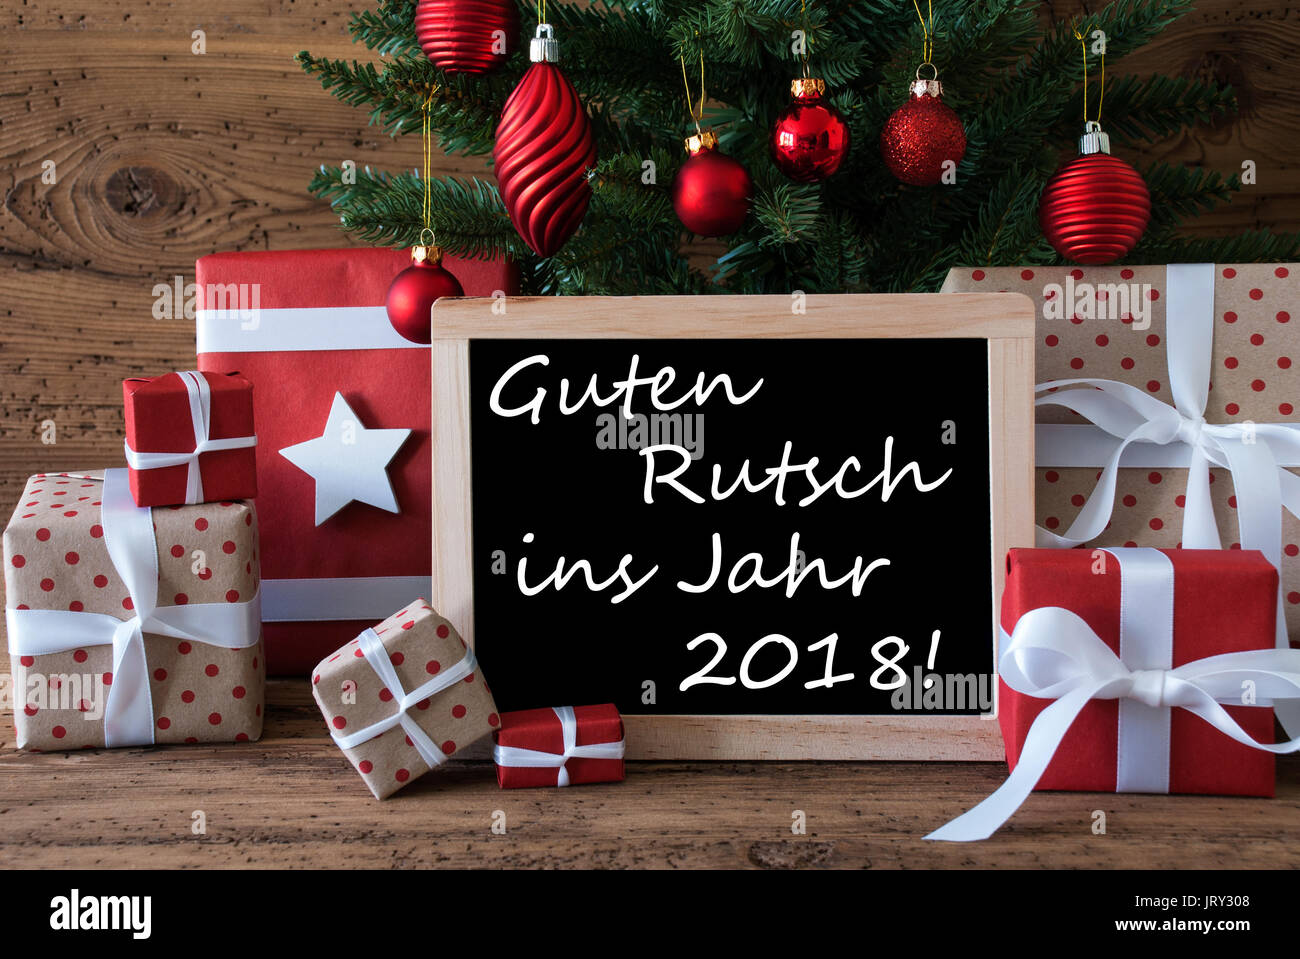 Colorful card for seasons greetings christmas tree with red balls colorful card for seasons greetings christmas tree with red balls gifts or presents in the front of wooden background chalkboard with german text g m4hsunfo